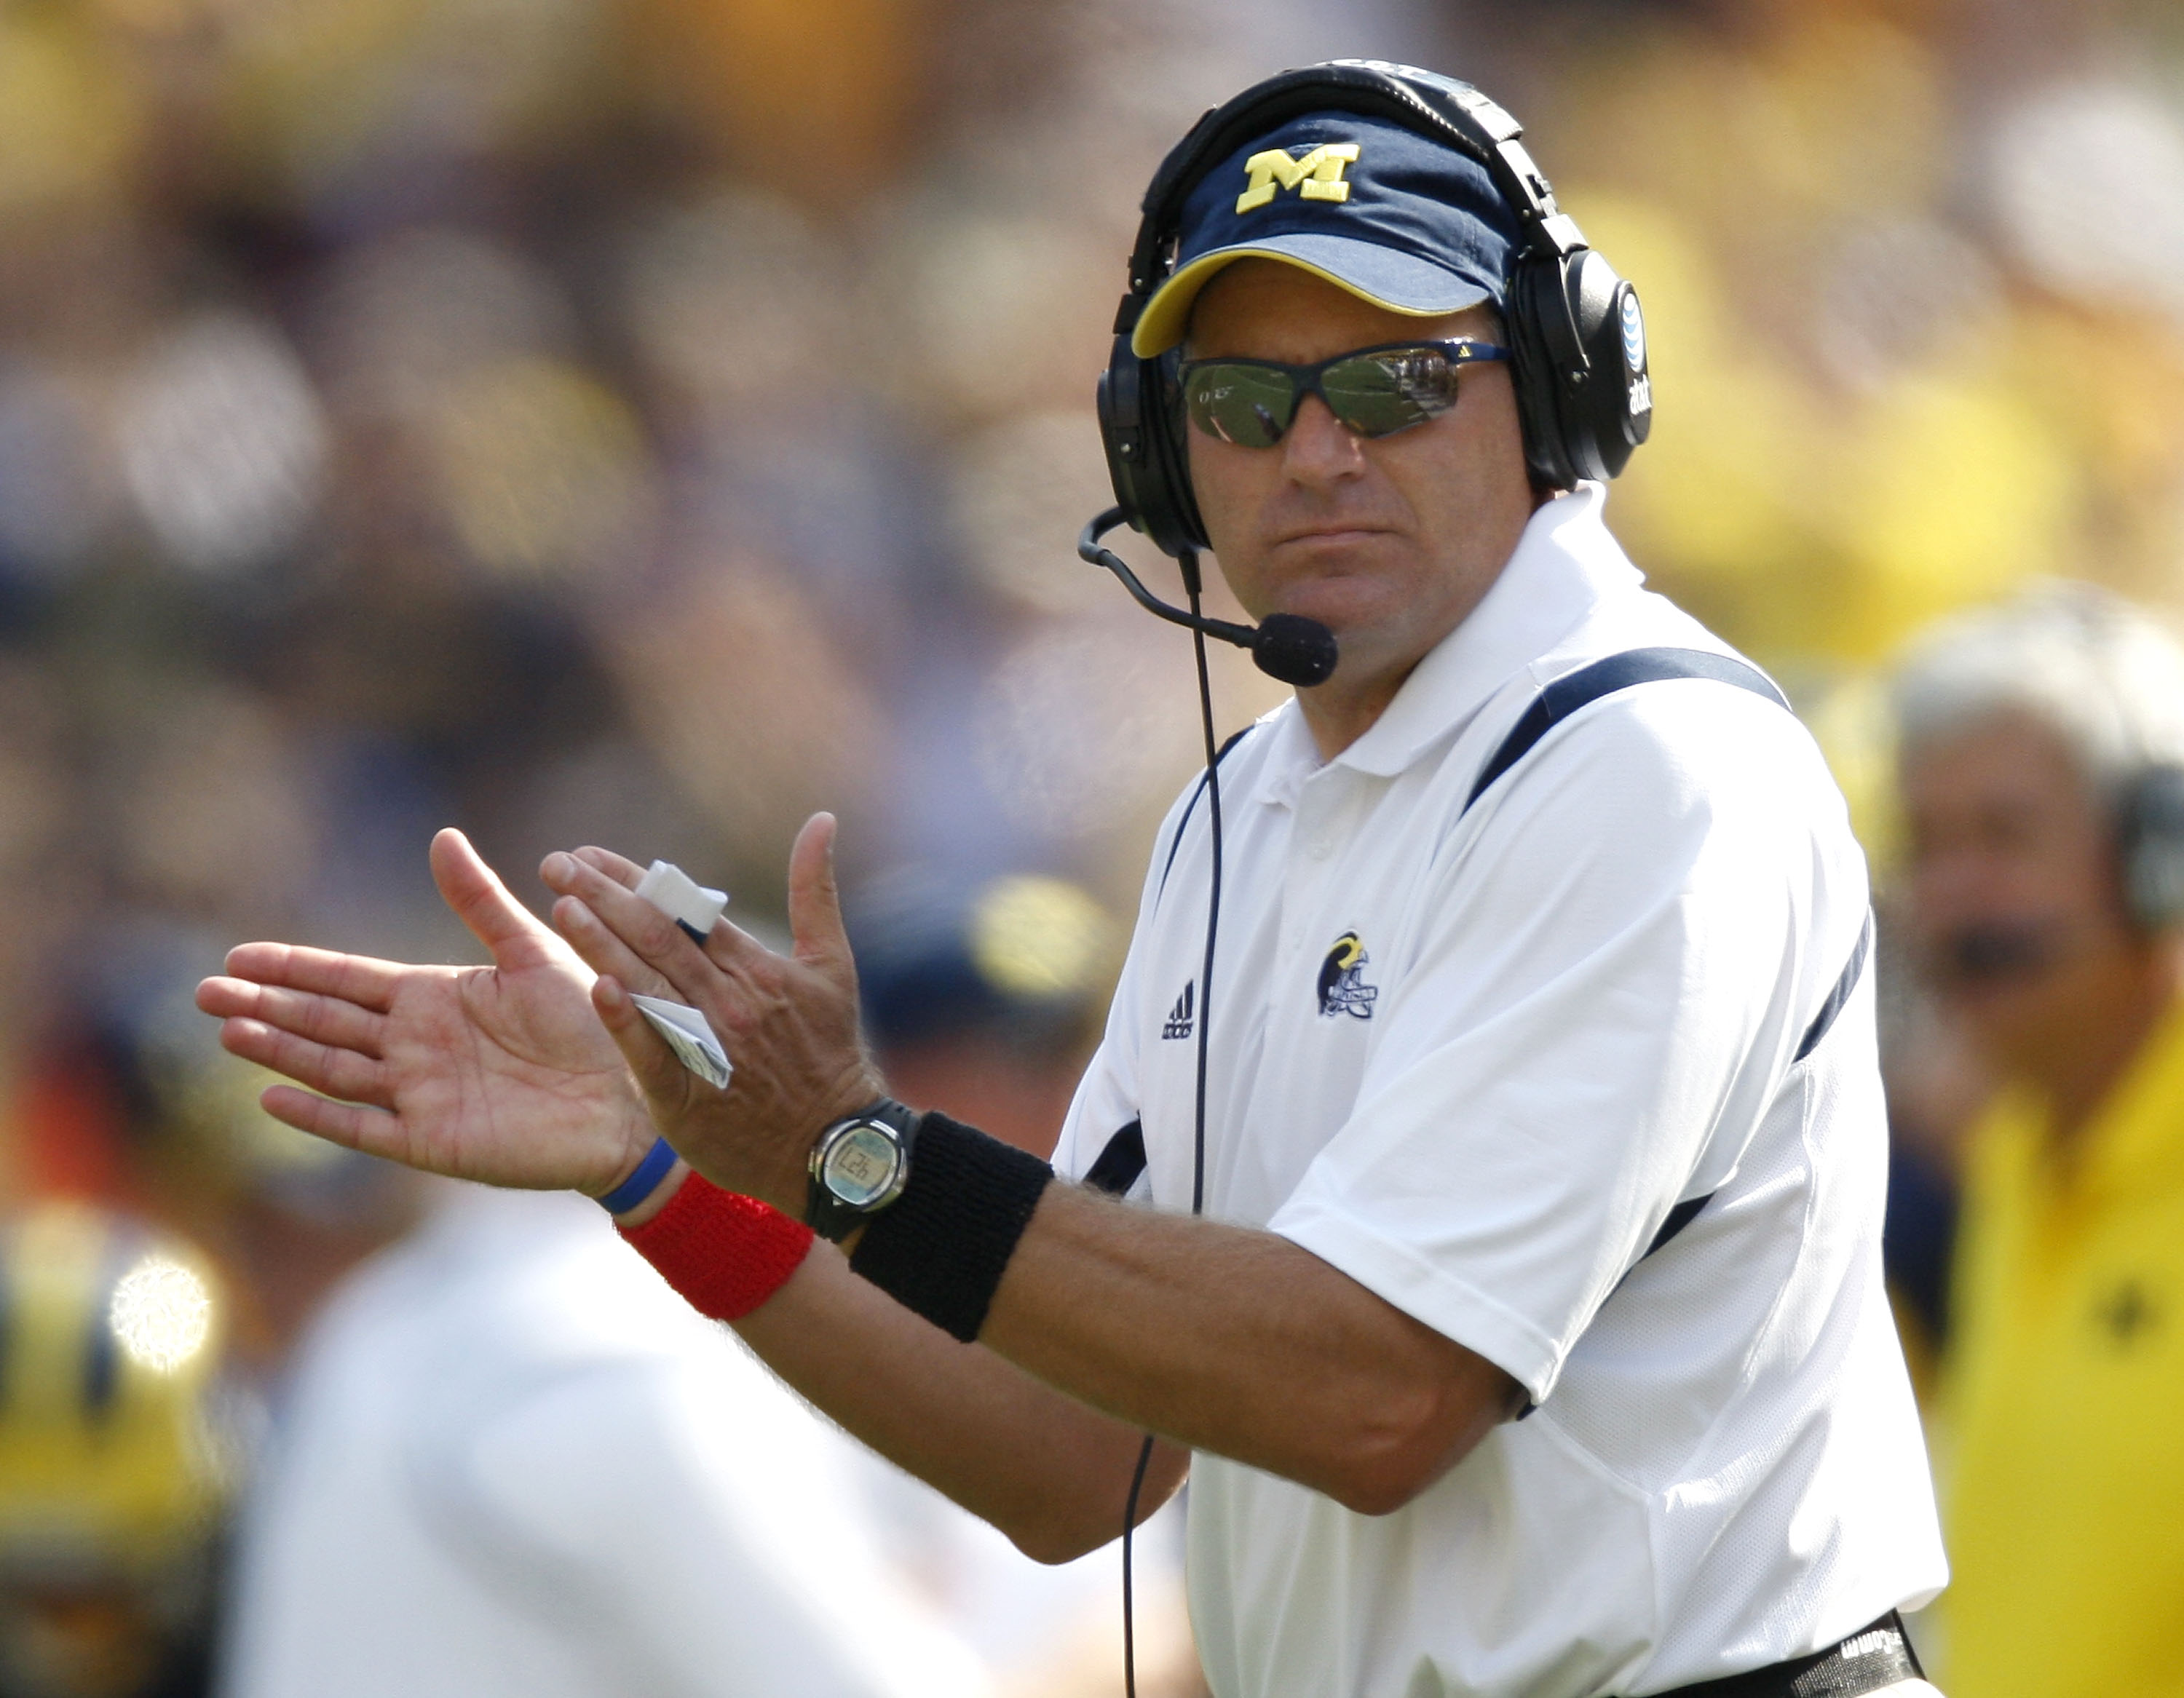 ANN ARBOR, MI - SEPTEMBER 05: Head coach Rich Rodriguez claps after a second quarter field goal against the Western Michigan Broncos vs. Michigan Wolverines on September 5, 2009 at Michigan Stadium in Ann Arbor, Michigan.  (Photo by Gregory Shamus/Getty I